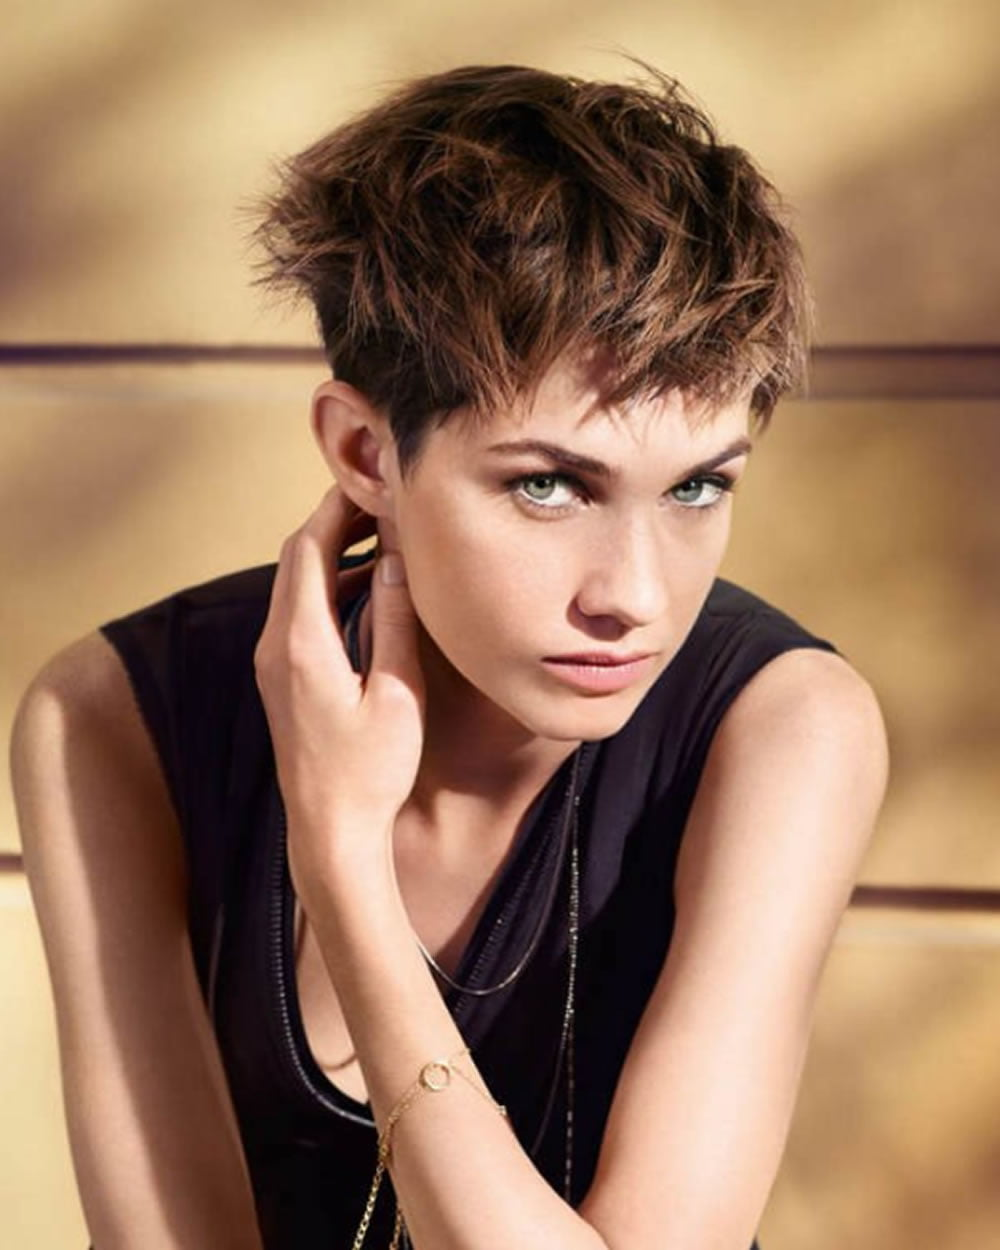 New Hairstyles: The Latest 25 Ravishing Short Hairstyles And Colors You